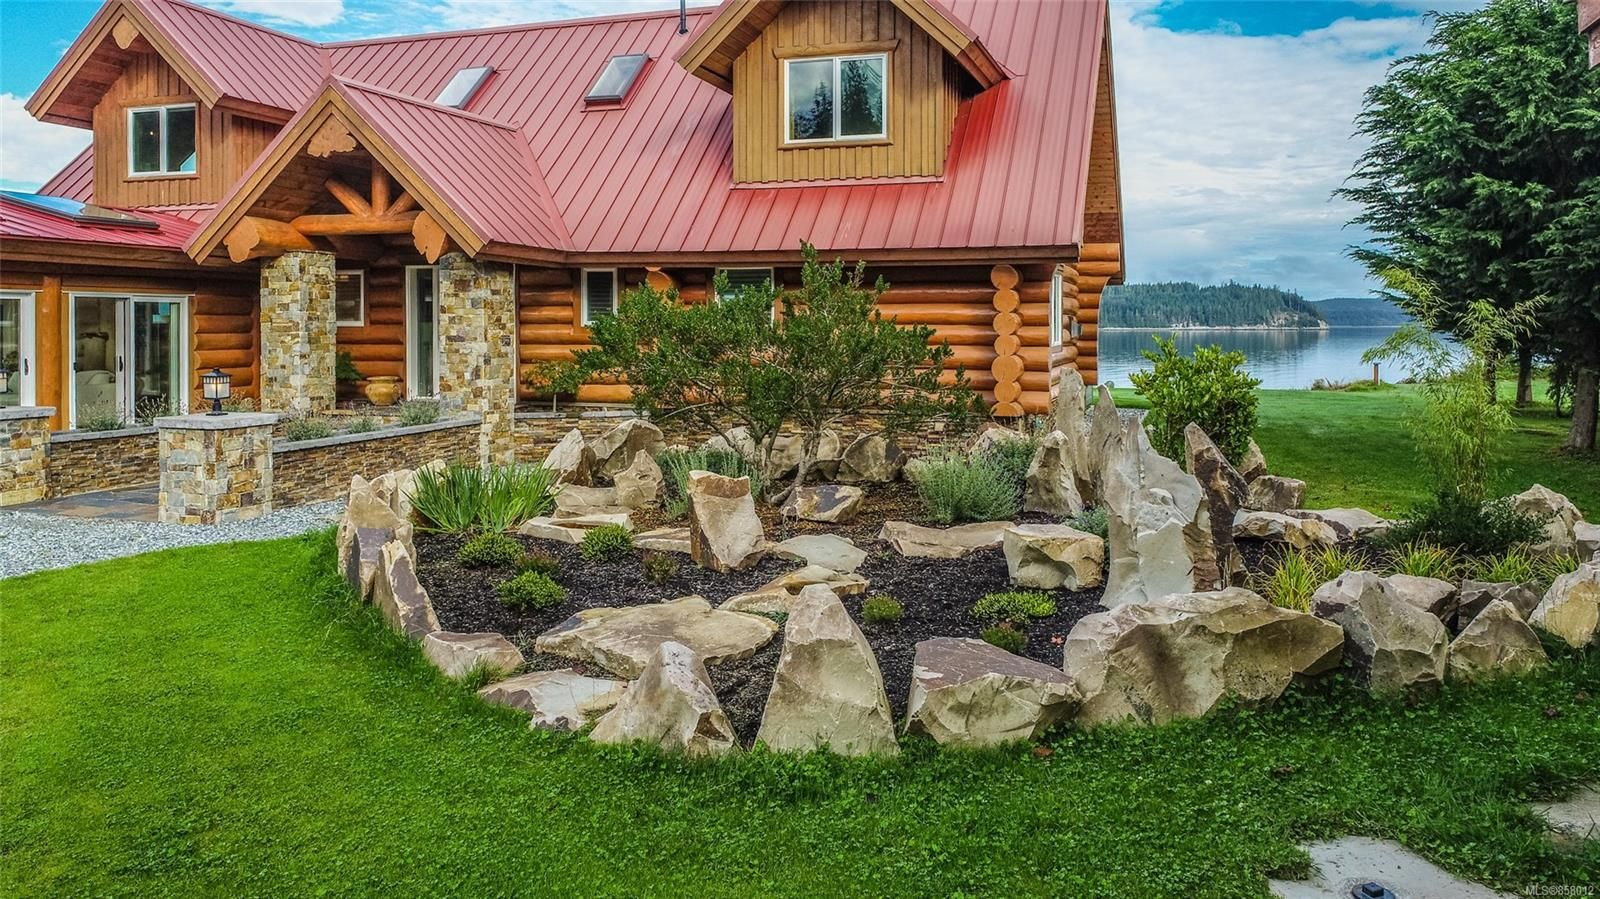 Photo 94: Photos: 6030 MINE Rd in : NI Port McNeill House for sale (North Island)  : MLS®# 858012